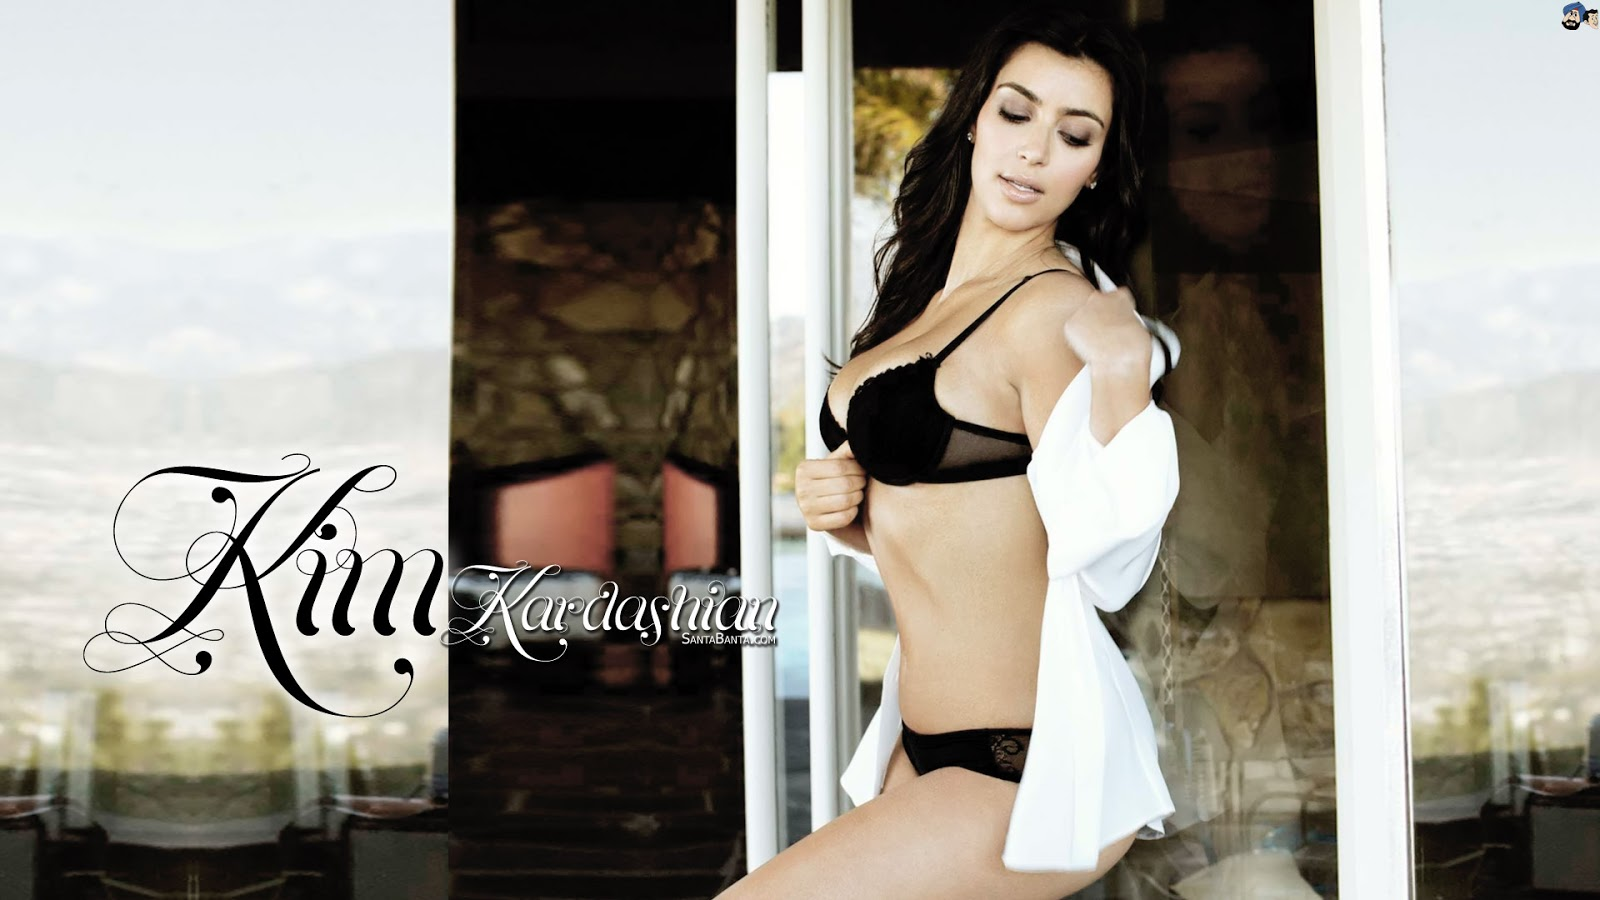 Kim Kardashian Wallpapers Most beautiful places in the 1600x900